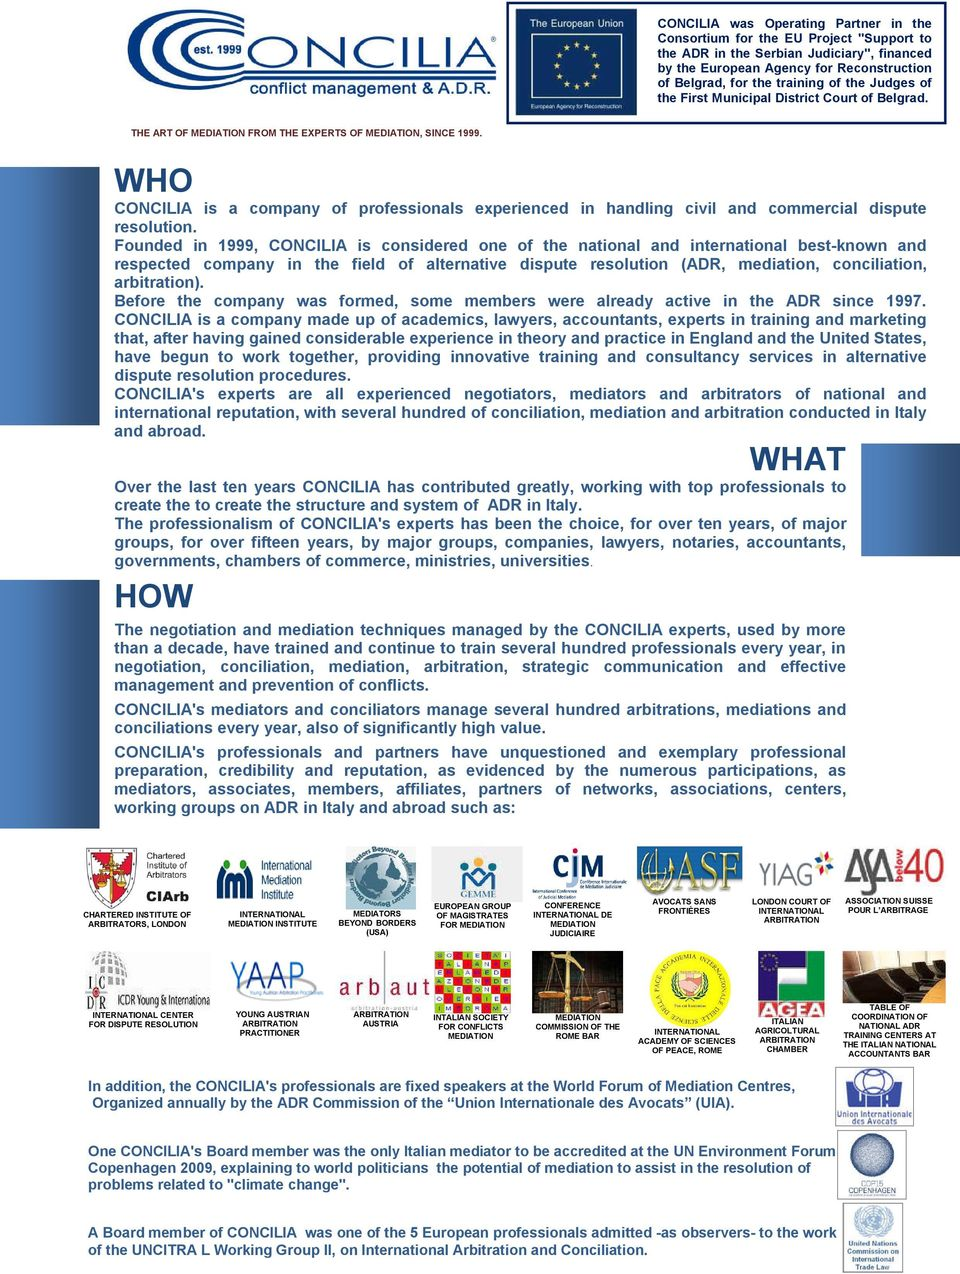 WHO CONCILIA is a company of professionals experienced in handling civil and commercial dispute resolution.